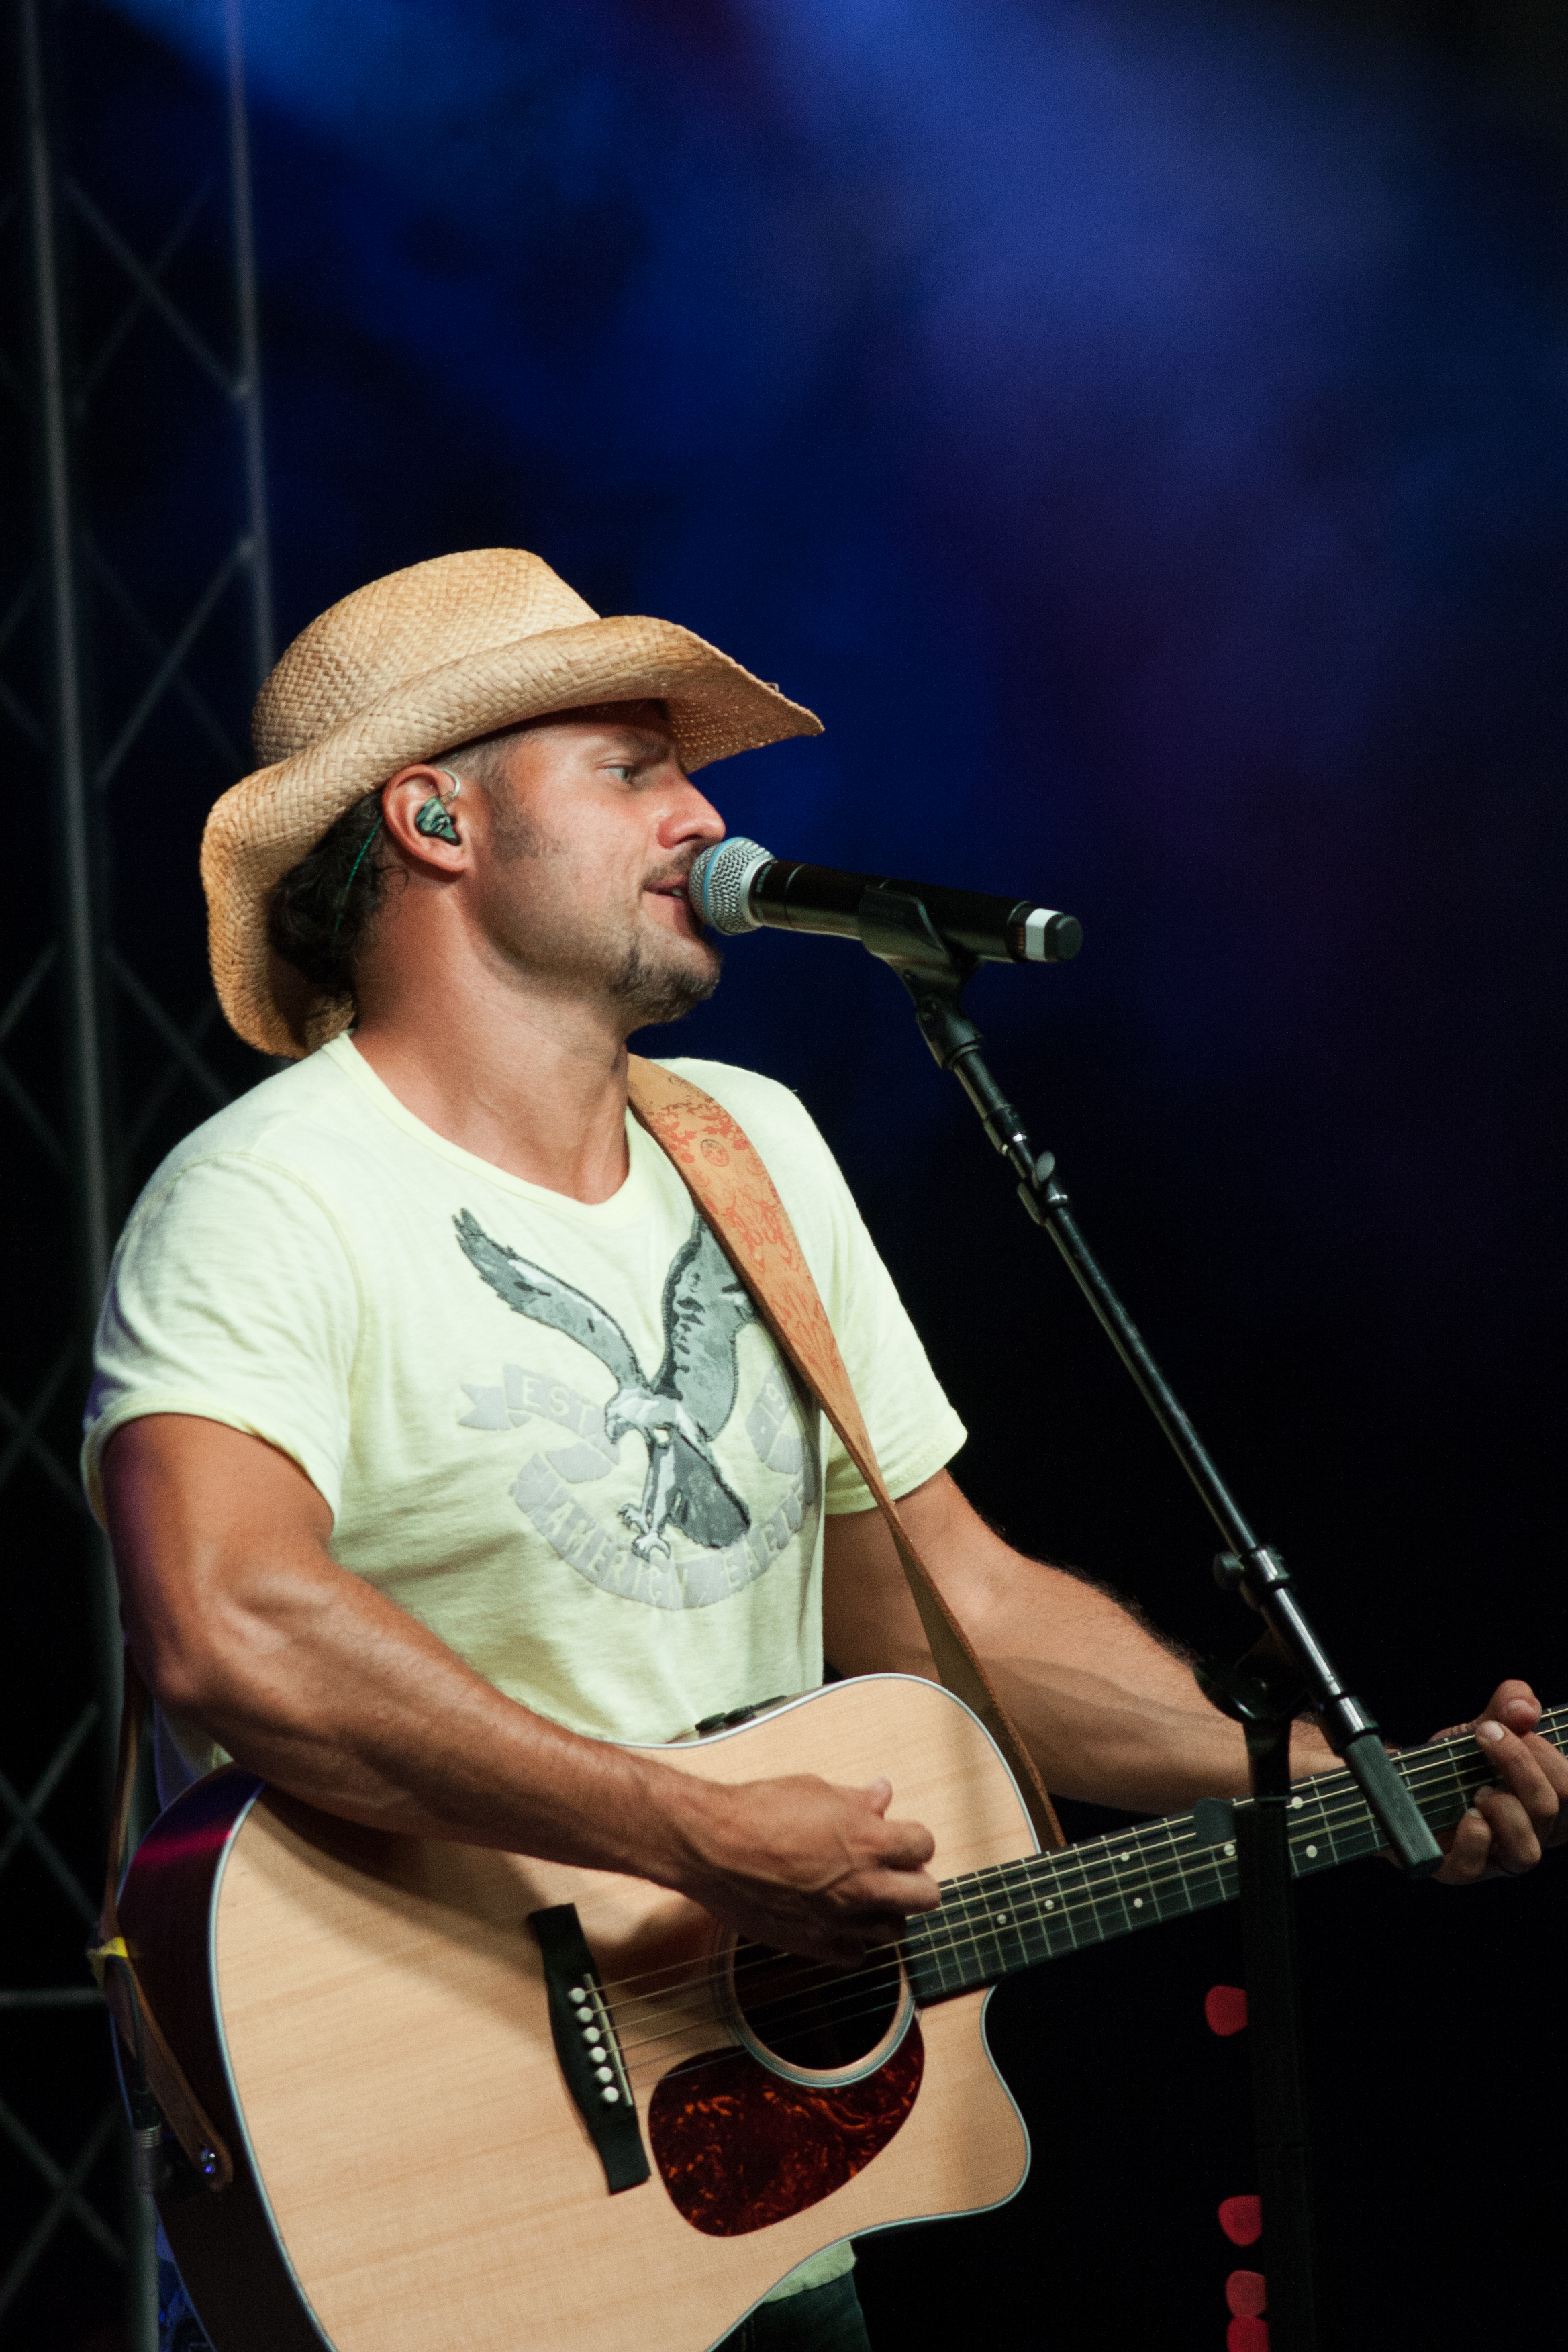 Chris Higbee at the Great Geauga County Fair.